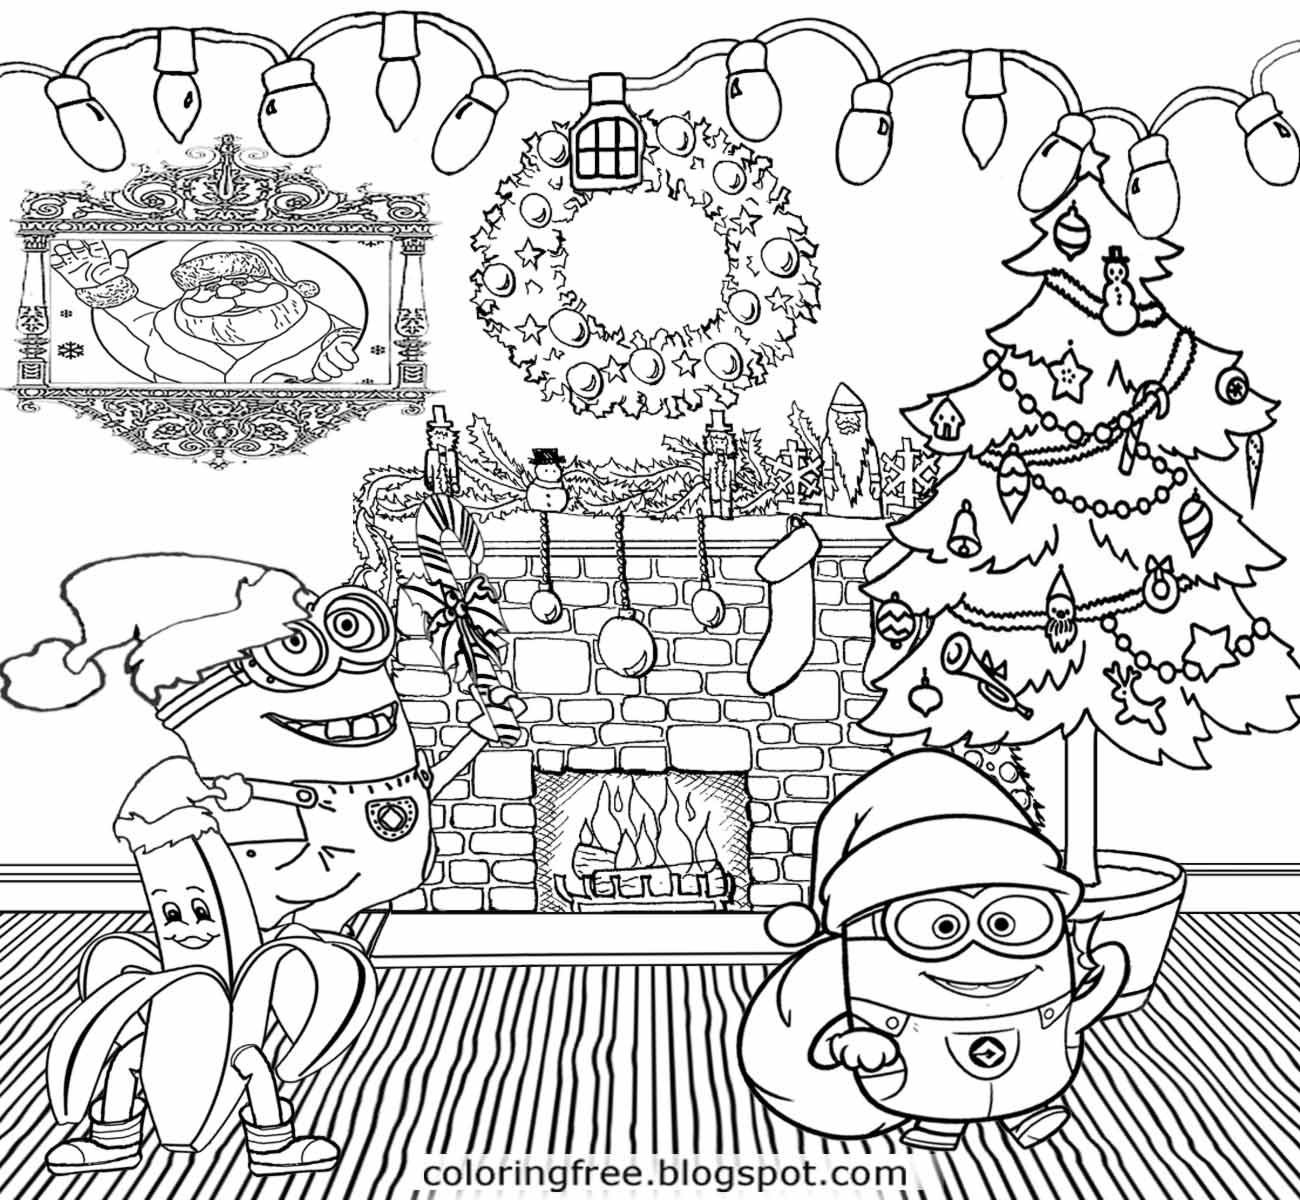 coloring minion pages with santa - photo#27